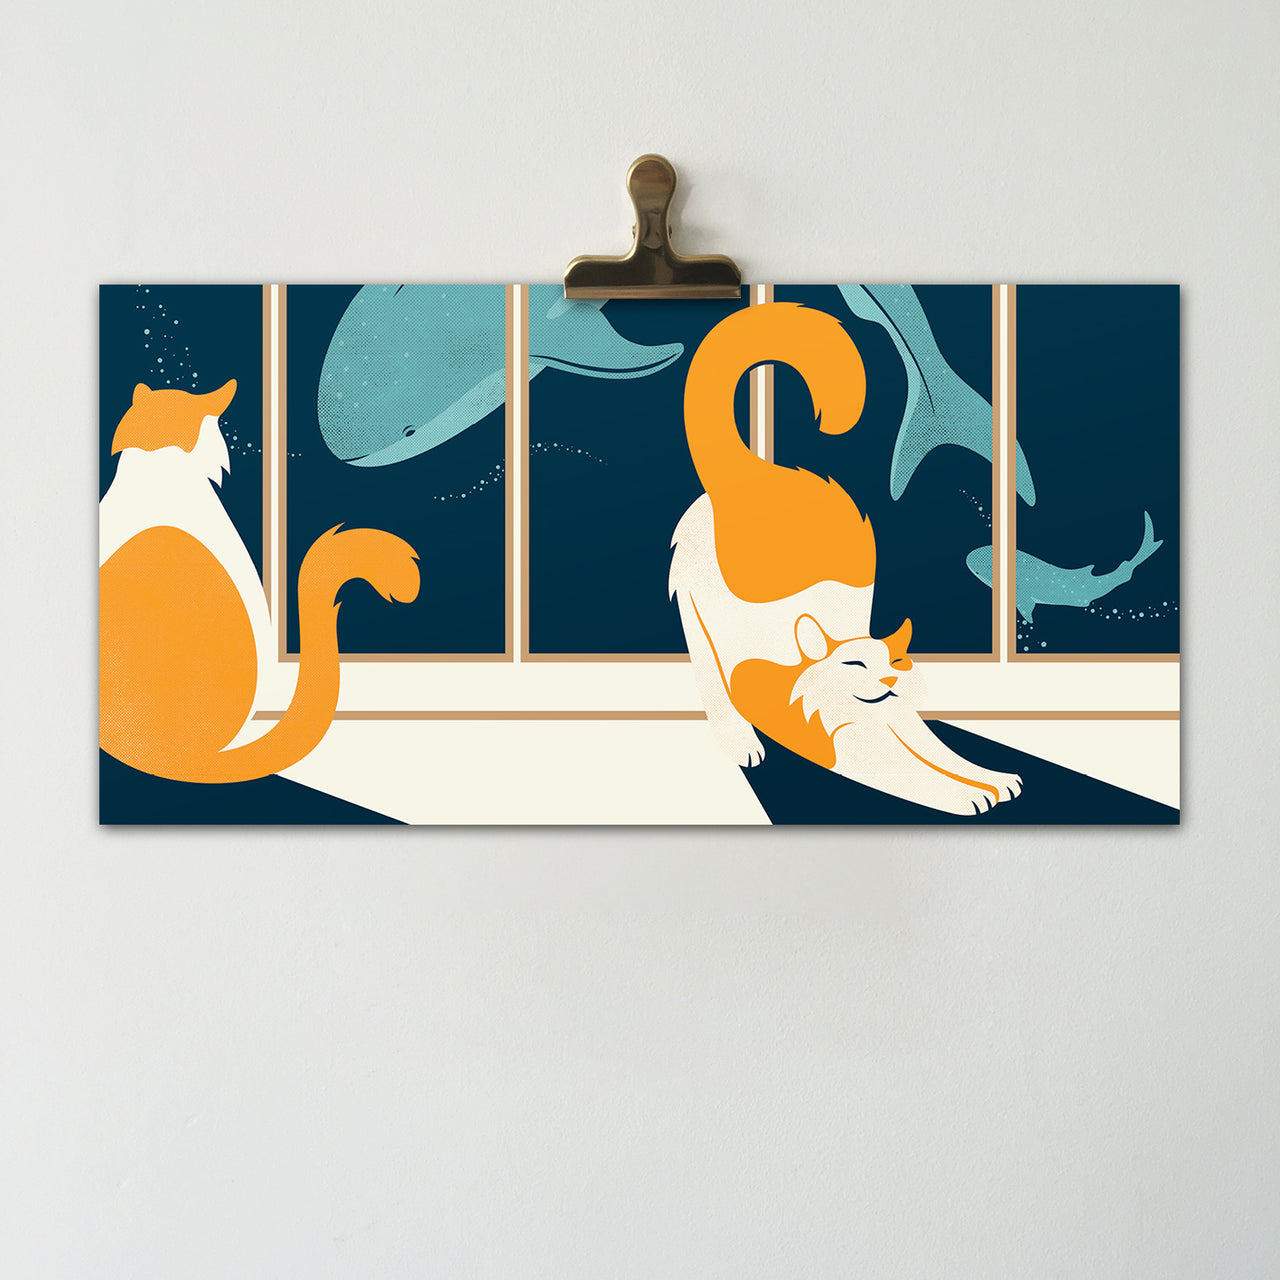 Aquarium Cats || Original Illustration Poster, Digital Print